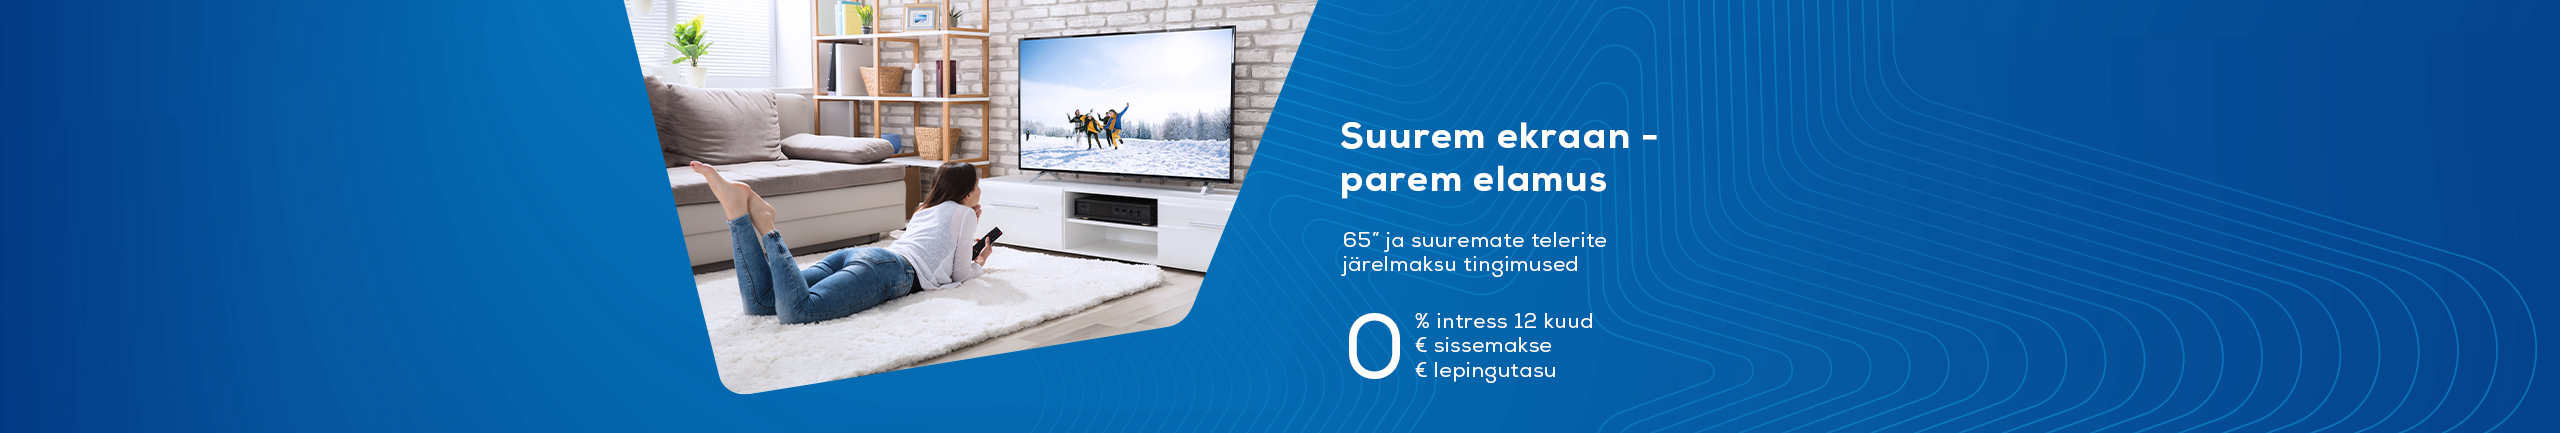 0% hire-purchase interest for 12 months for large TV-s